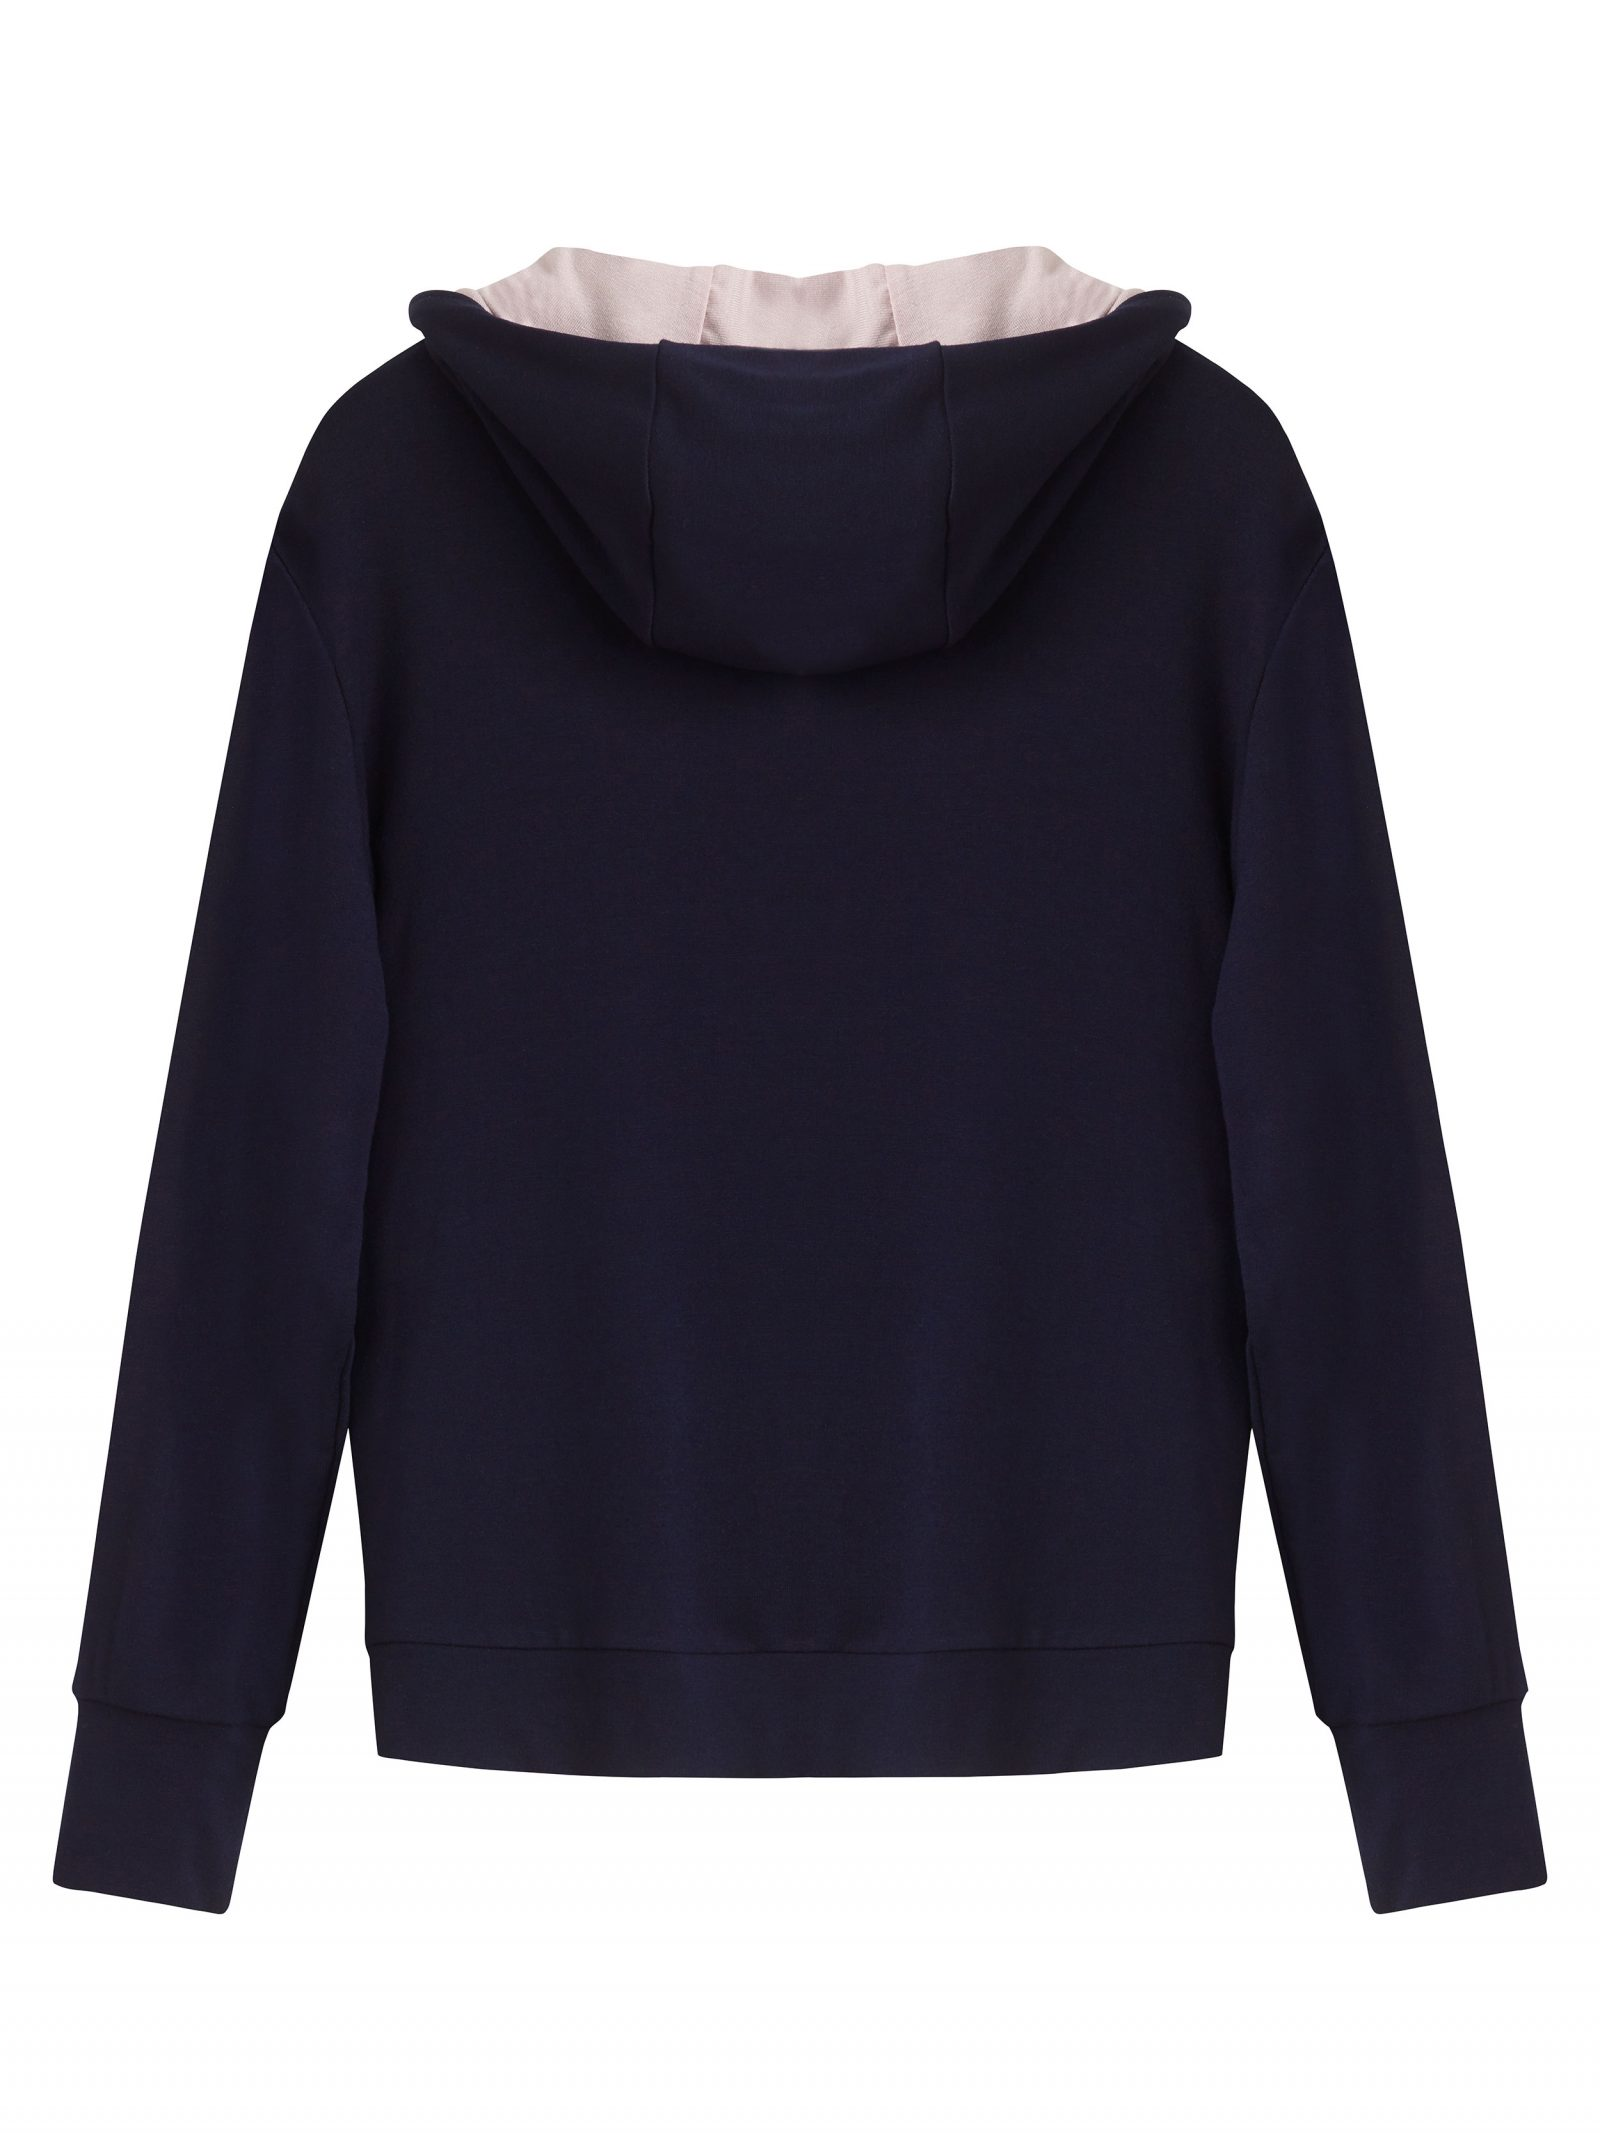 Girls pink and navy soft jersey hooded jacket